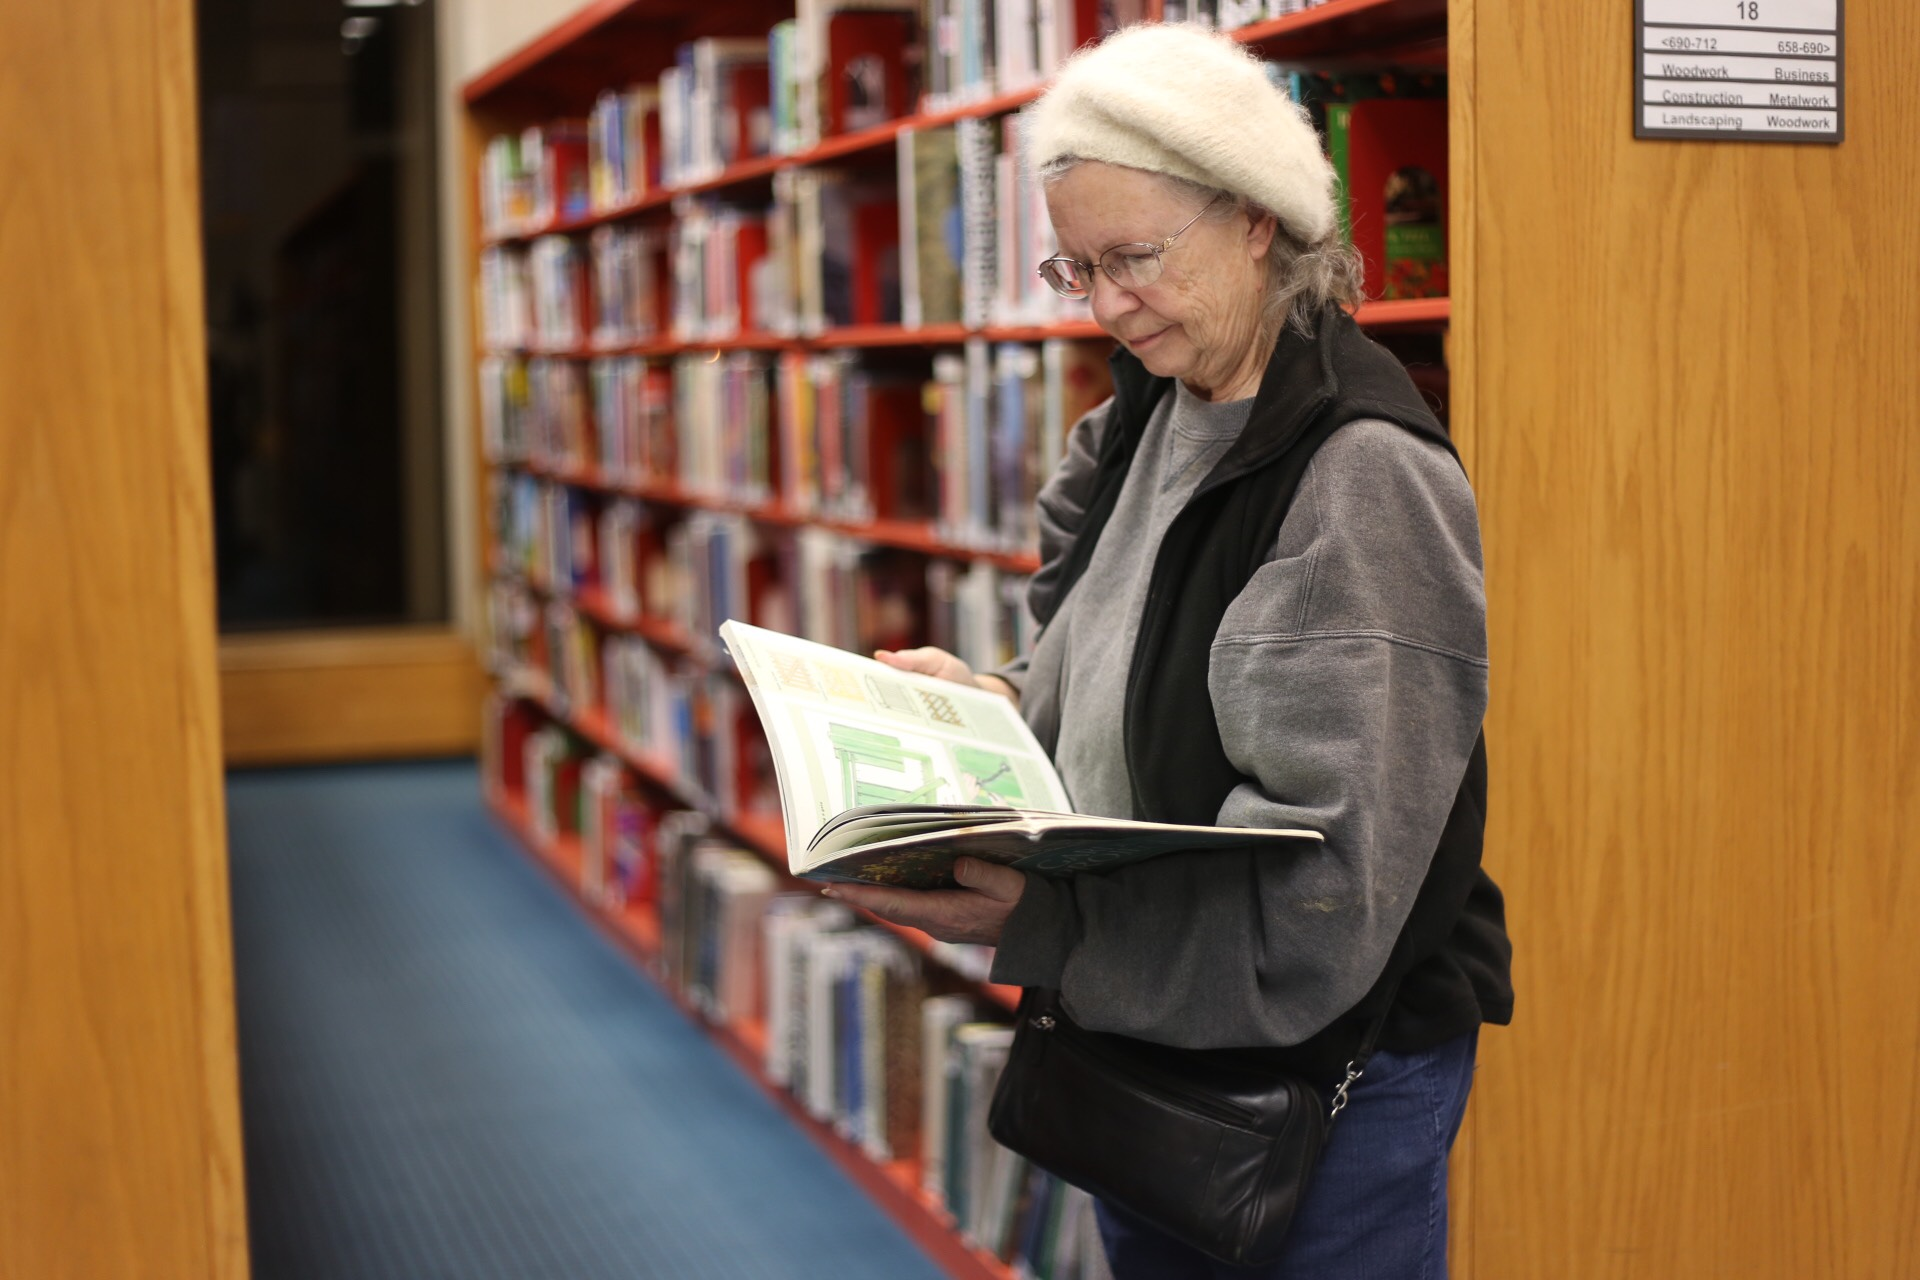 Library Has Been Sitting Empty Awaiting >> Residents Fear Salem Public Library S New Policy Could Purge Books